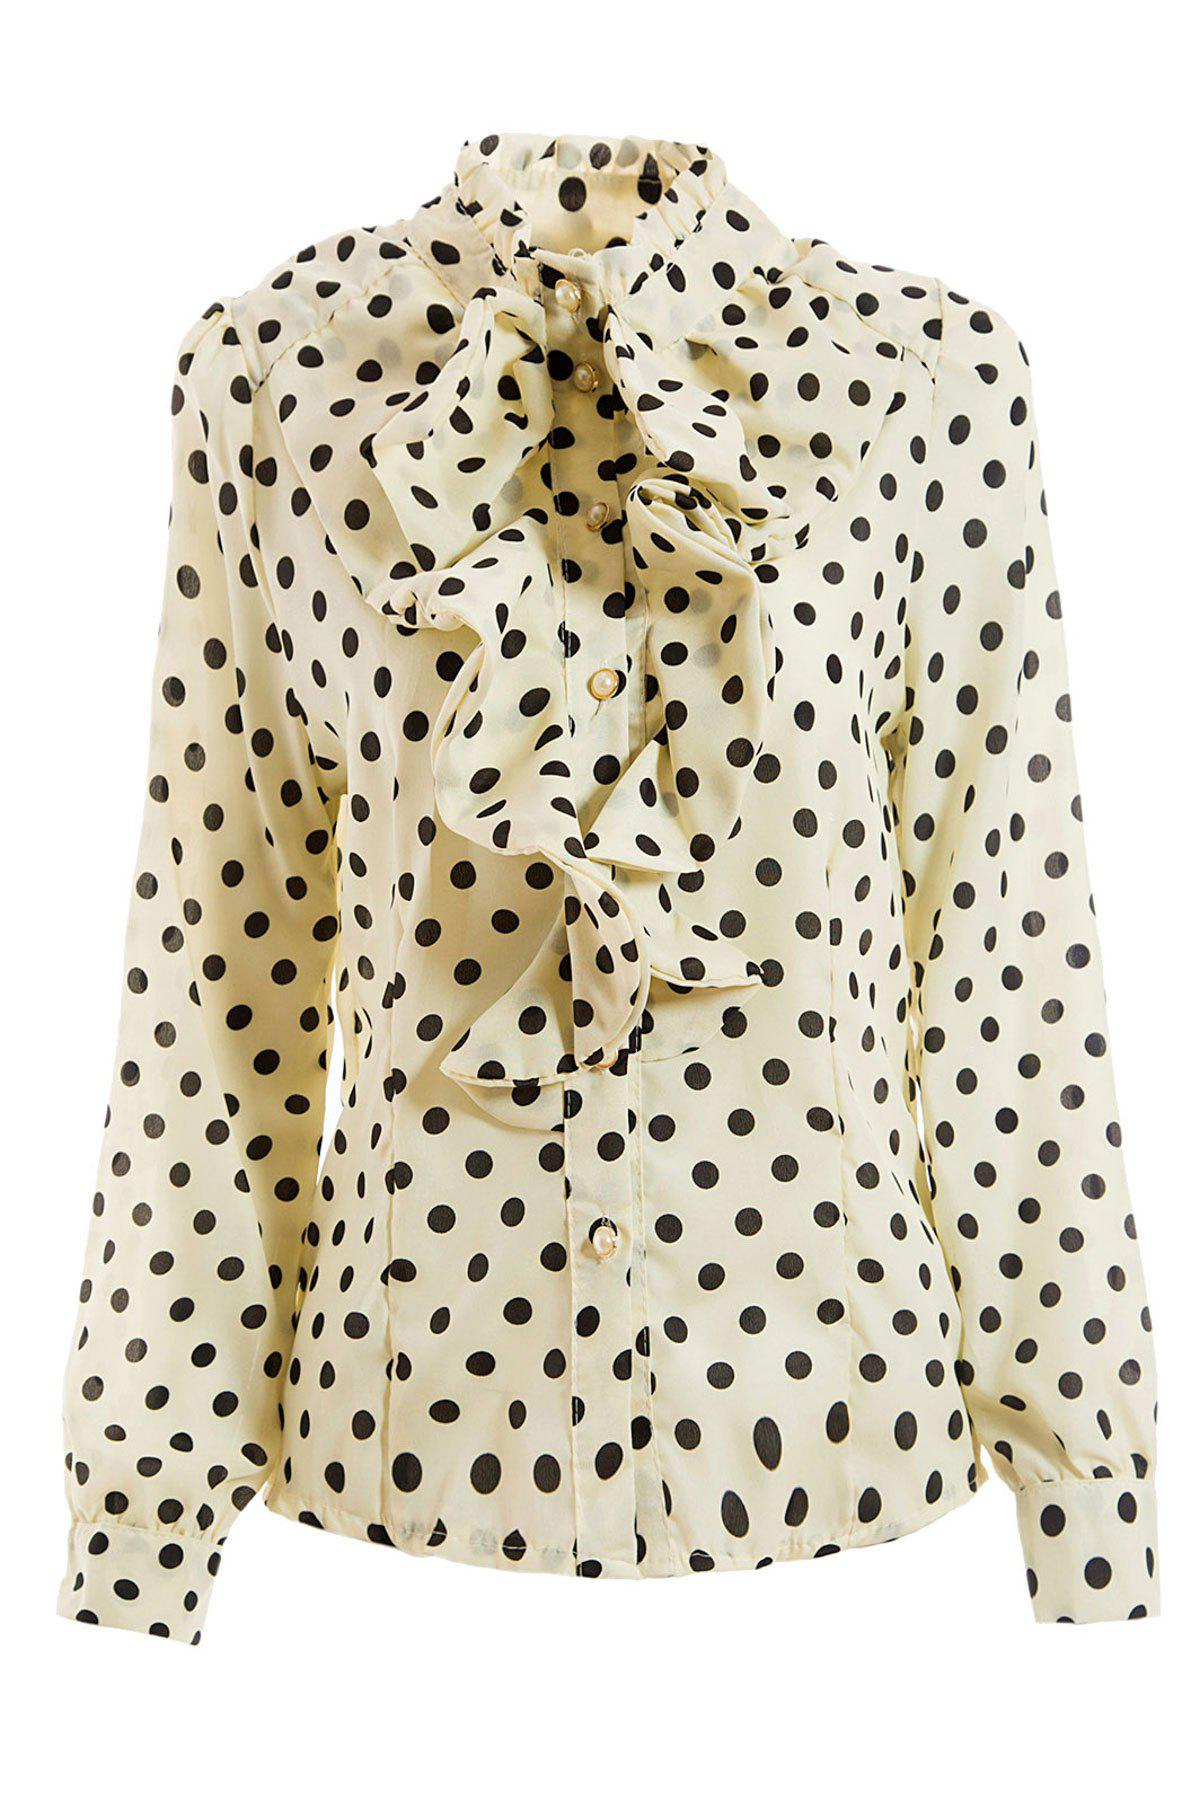 Elegant Style Stand Collar Polka Dot Flouncing Embellished Long Sleeve Chiffon Women's Shirt - WHITE M